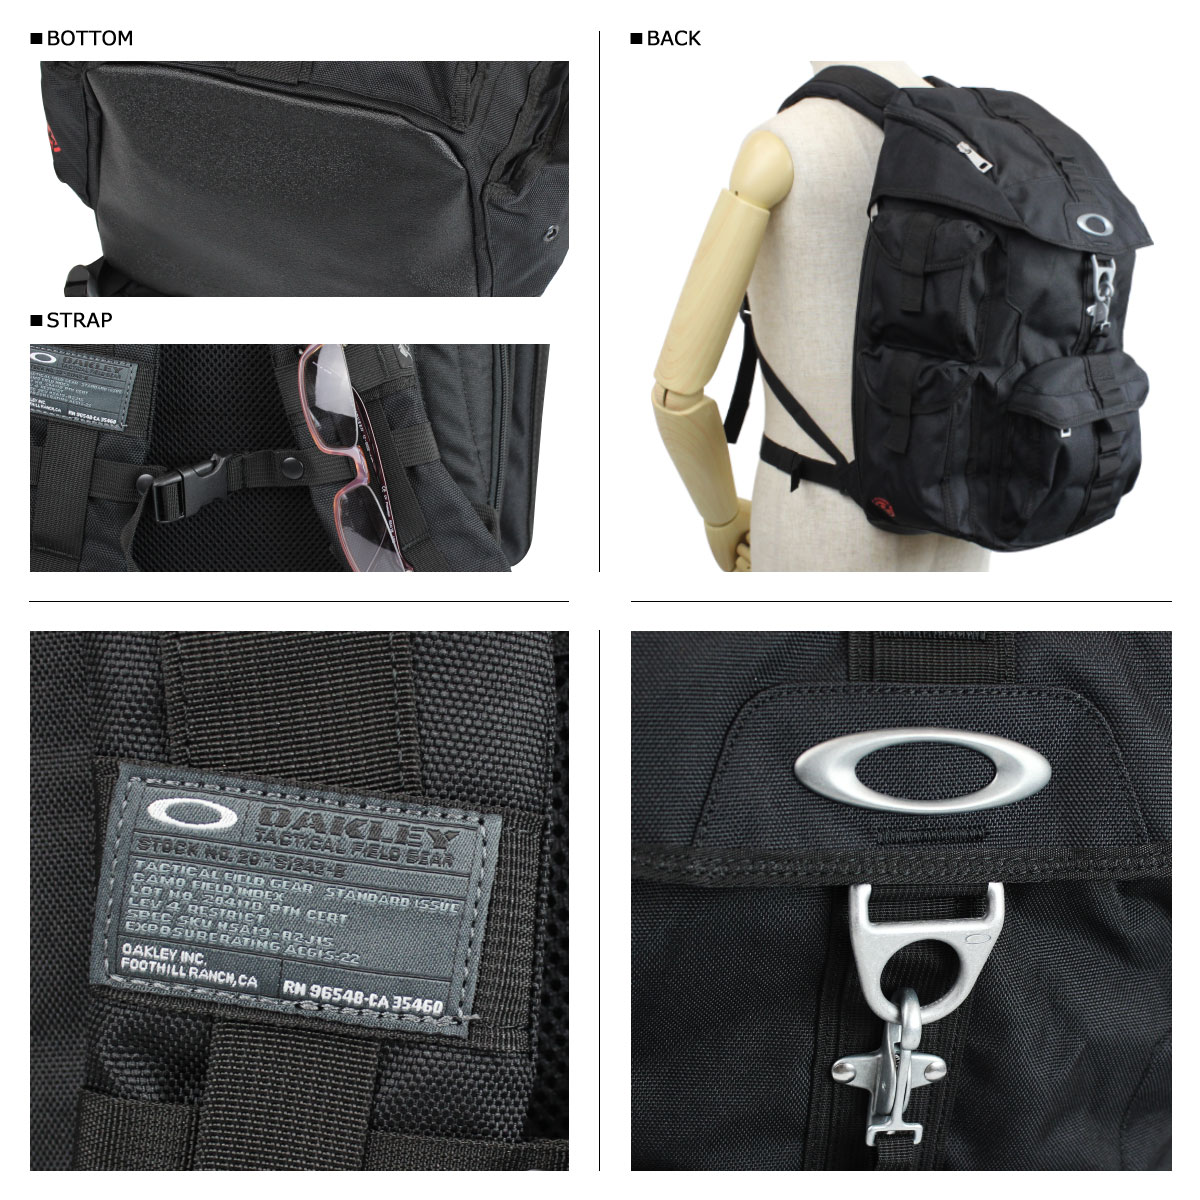 Point 2 x Oakley Oakley mens Backpack Rucksack 92607 limited express sleeper - 001 PACK DRY GOODS [9/14 new in stock]